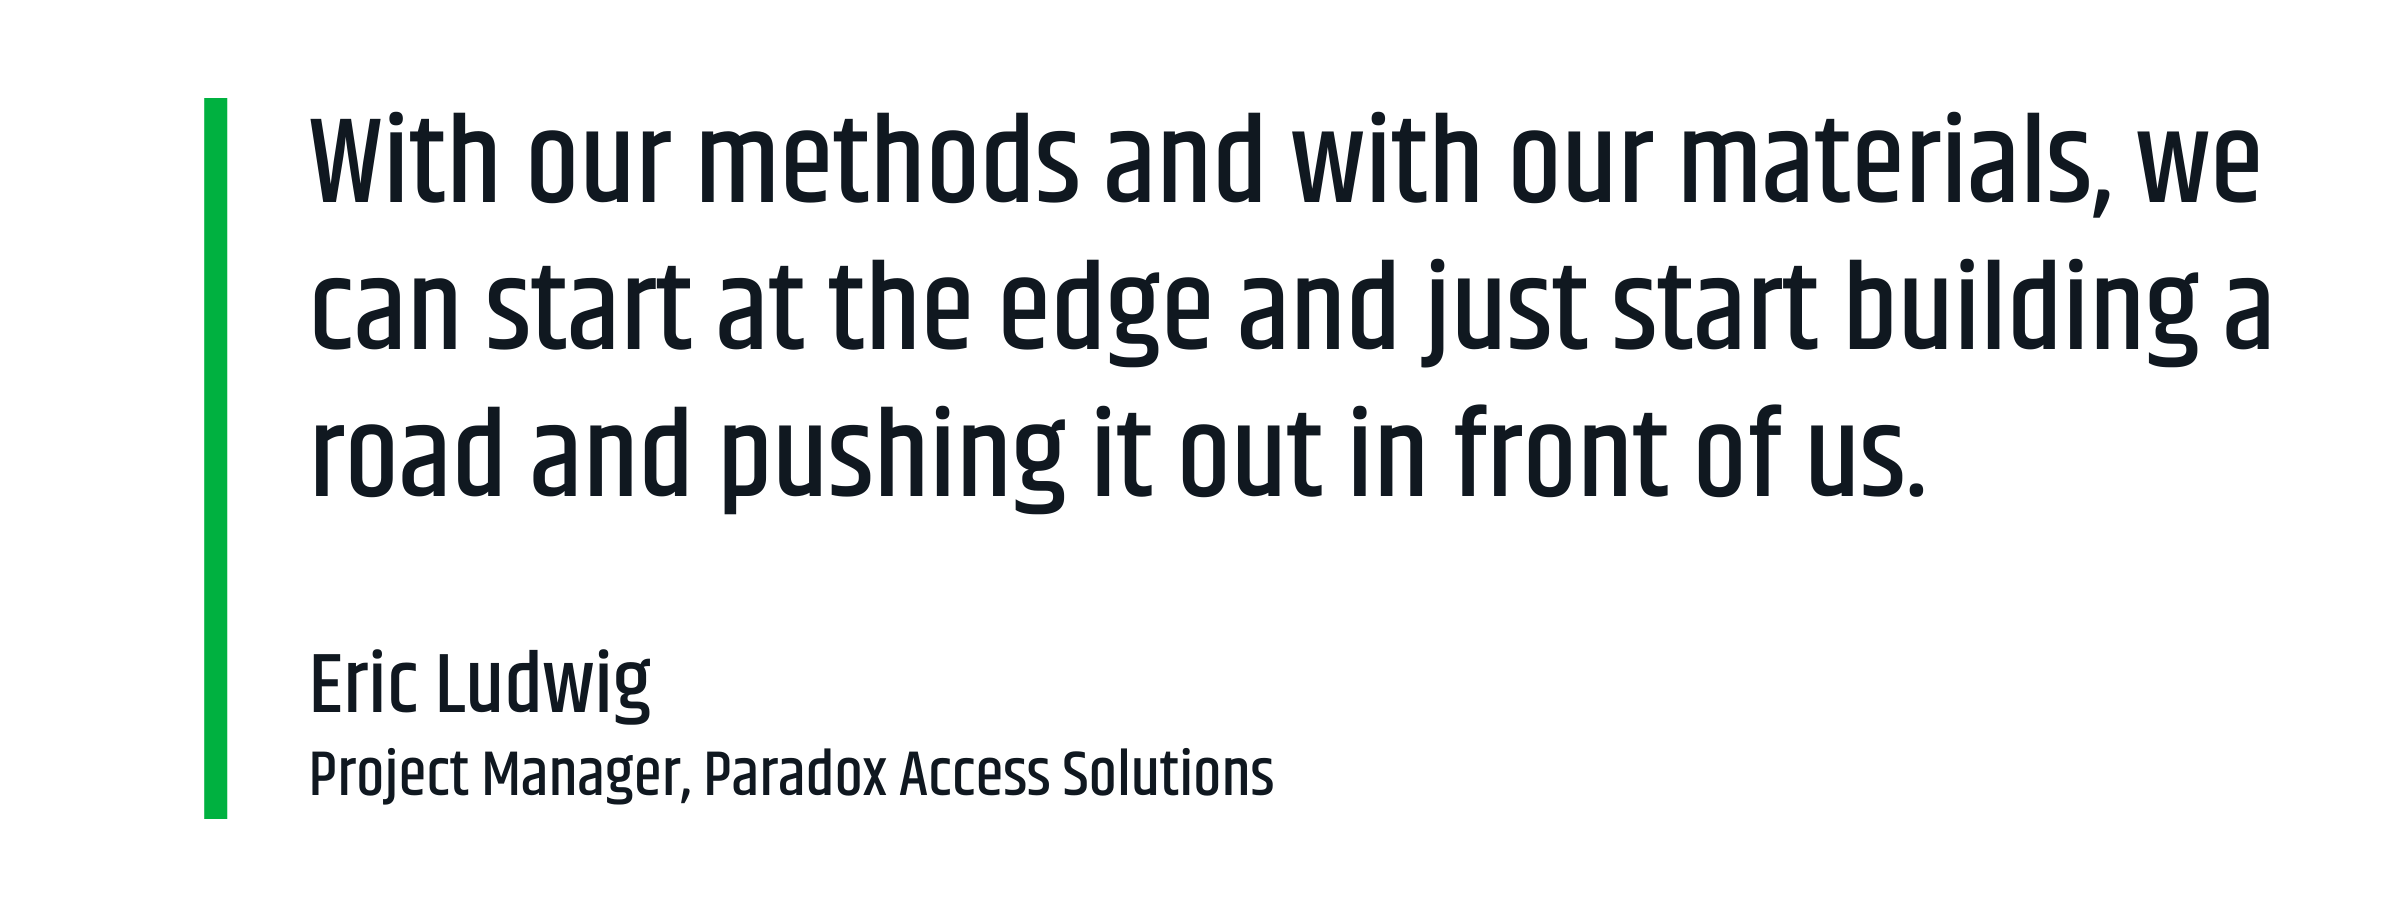 """With our methods and with our materials, we can start at the edge and just start building a road and pushing it out in front of us."" —Eric Ludwig, Project Manager, Paradox Access Solutions"